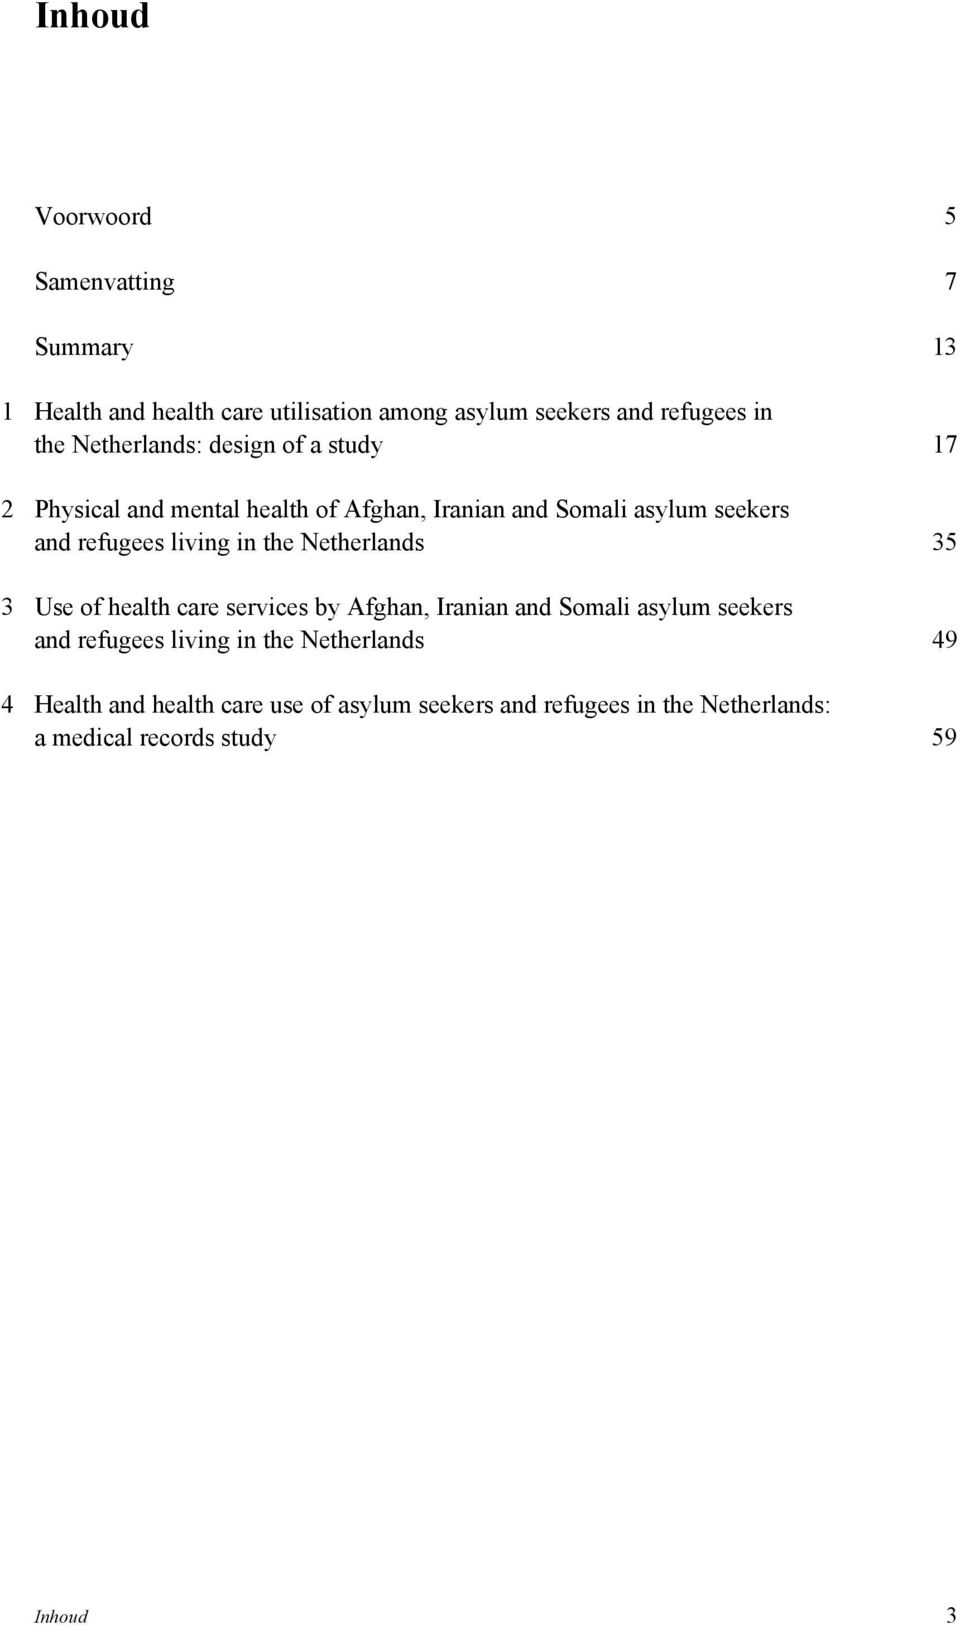 living in the Netherlands 35 3 Use of health care services by Afghan, Iranian and Somali asylum seekers and refugees living in